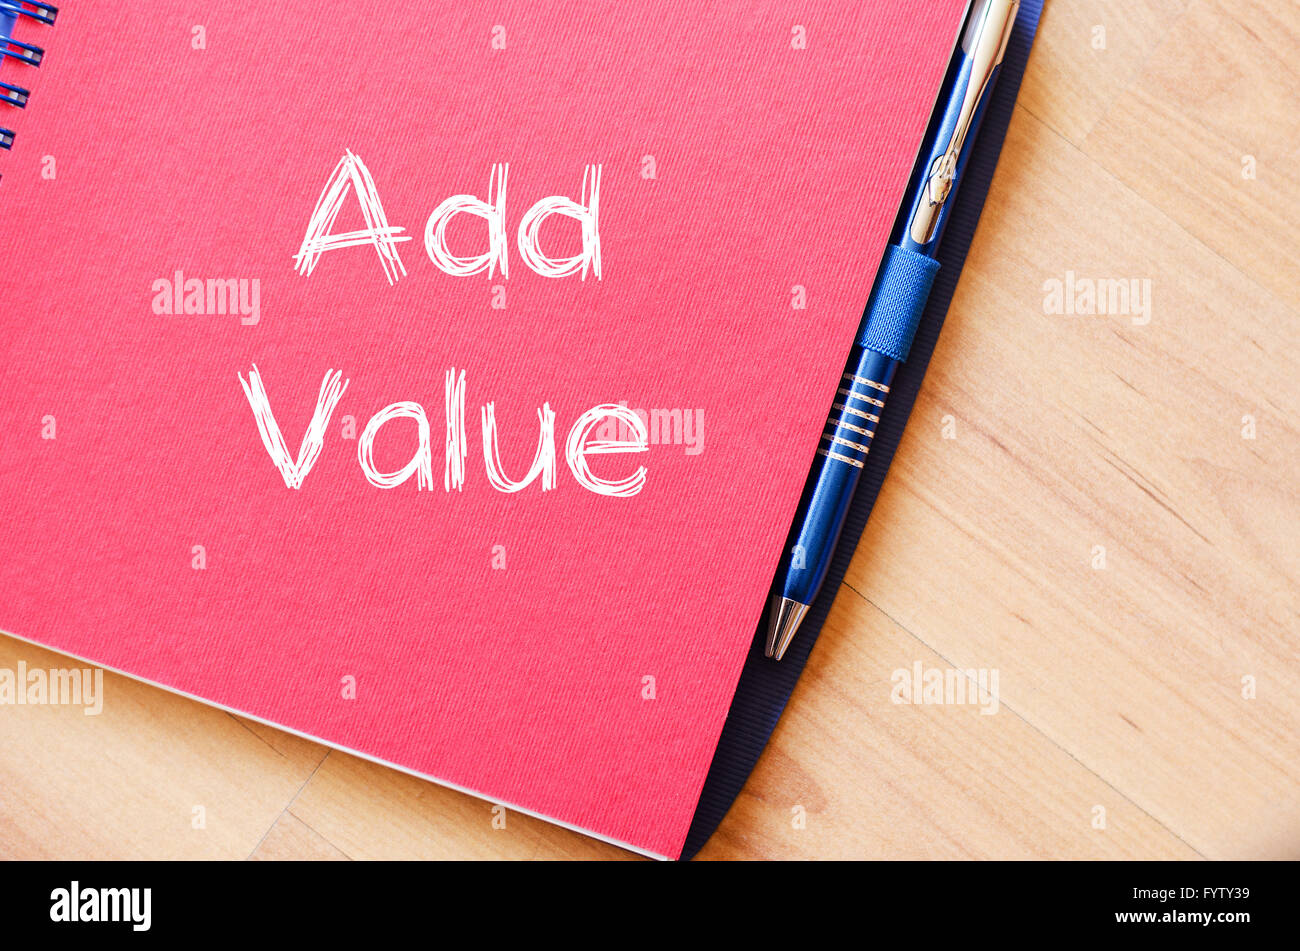 Add value write on notebook - Stock Image